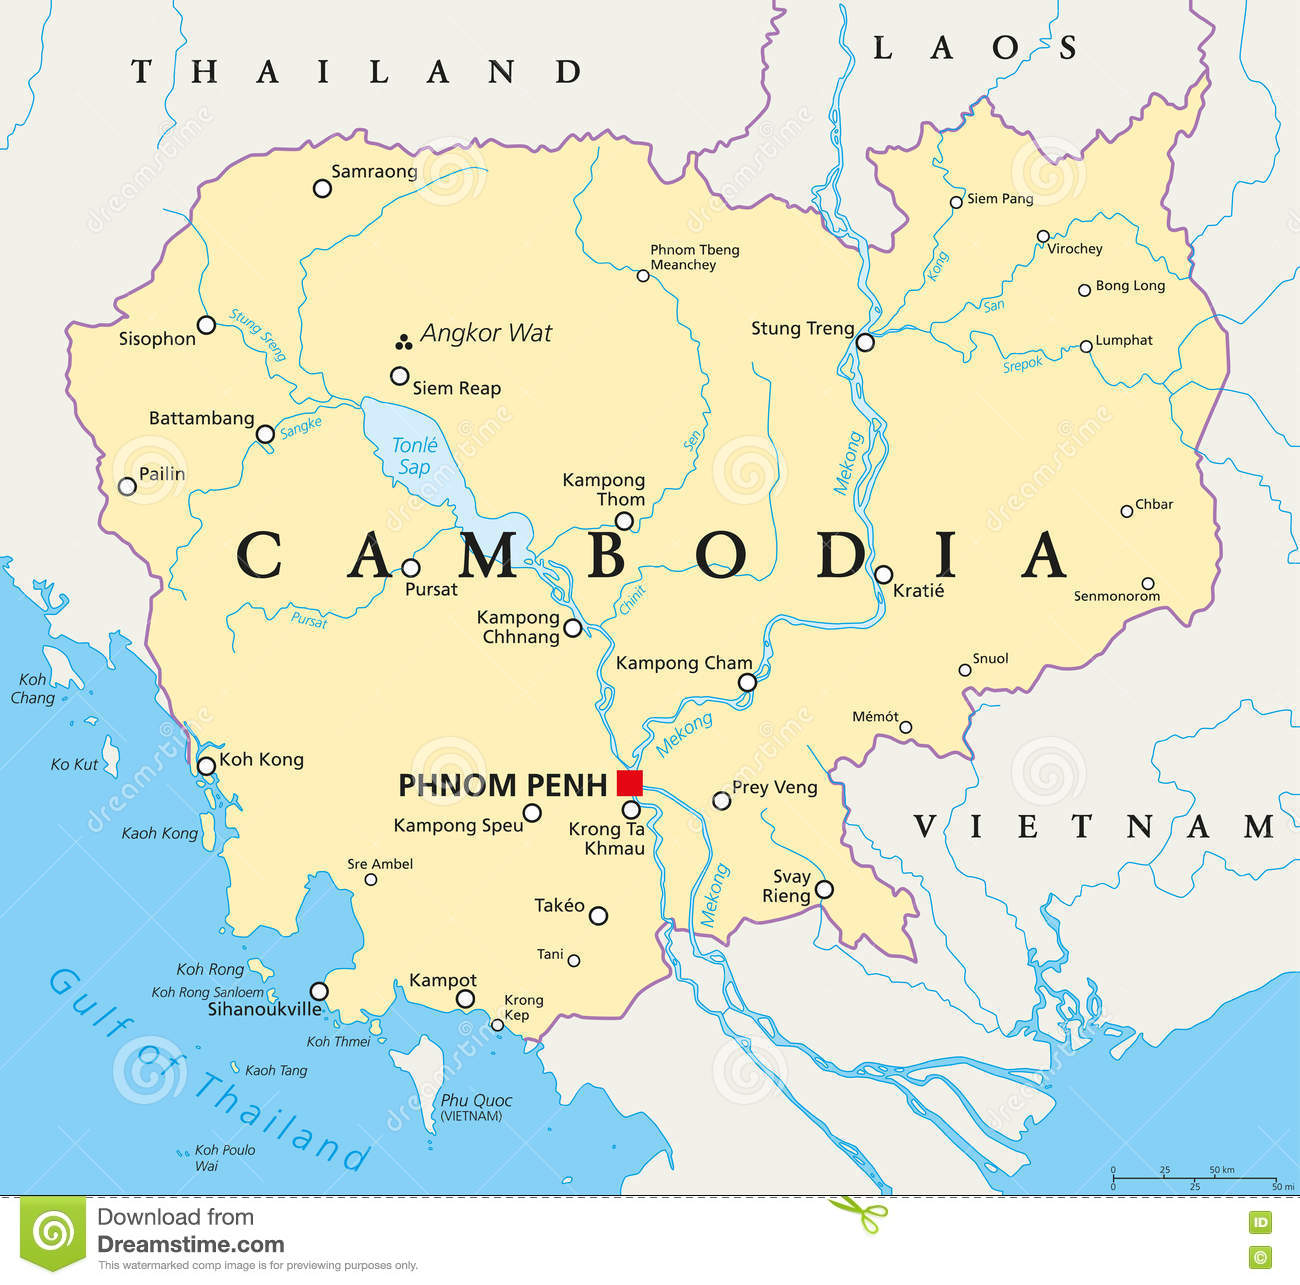 labeled map of the world with Stock Photo Cambodia Political Map Capital Phnom Penh National Borders Important Cities Rivers Lakes Kingdom Indochina Southeast Image74092541 on European Wine Exploration Map in addition 6833158658 besides South East Asia 1500bc together with 6201135213 moreover 1939 Blank World Map 656147228.